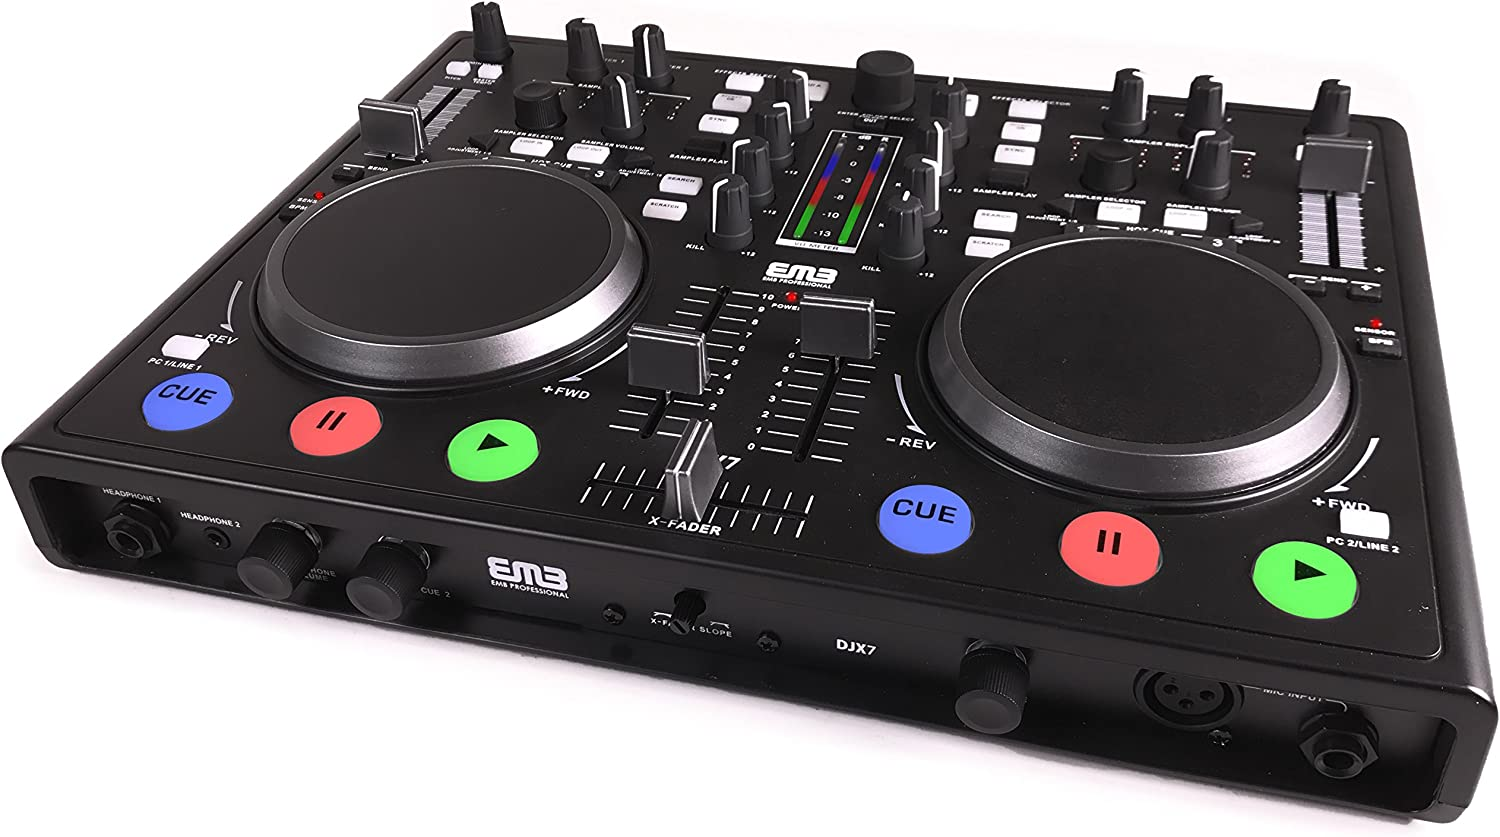 Amazon.com: EMB - DJX7 - NEW Professional DUAL MP3 Mixer DJ Scratch Midi  Controller! Virtual DJ Software included! (Matte Black): Musical Instruments